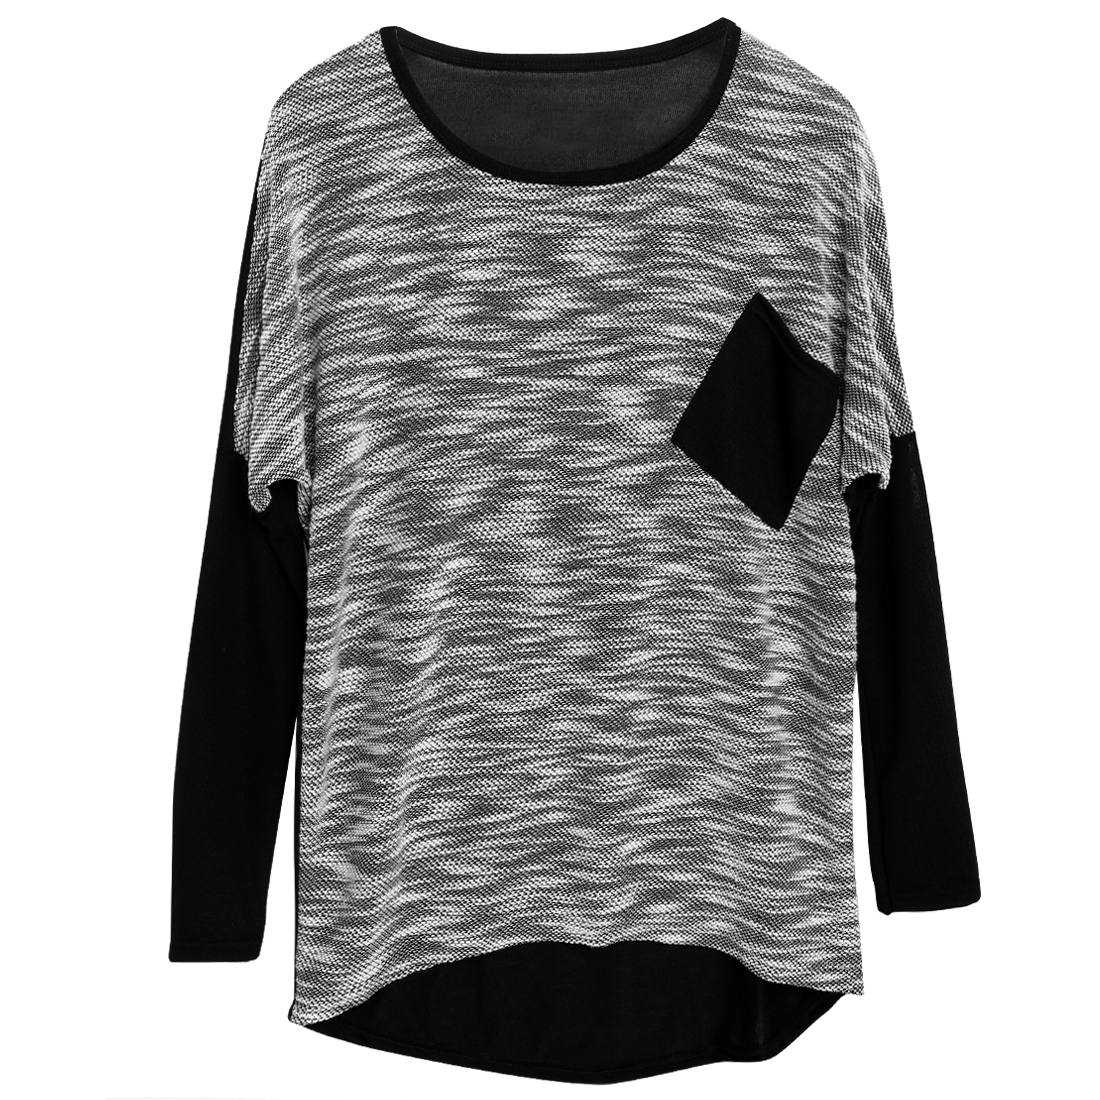 Lady's Loose High Low Hem Spliced Batwing Sleeve Pullover Knit Shirt Black S